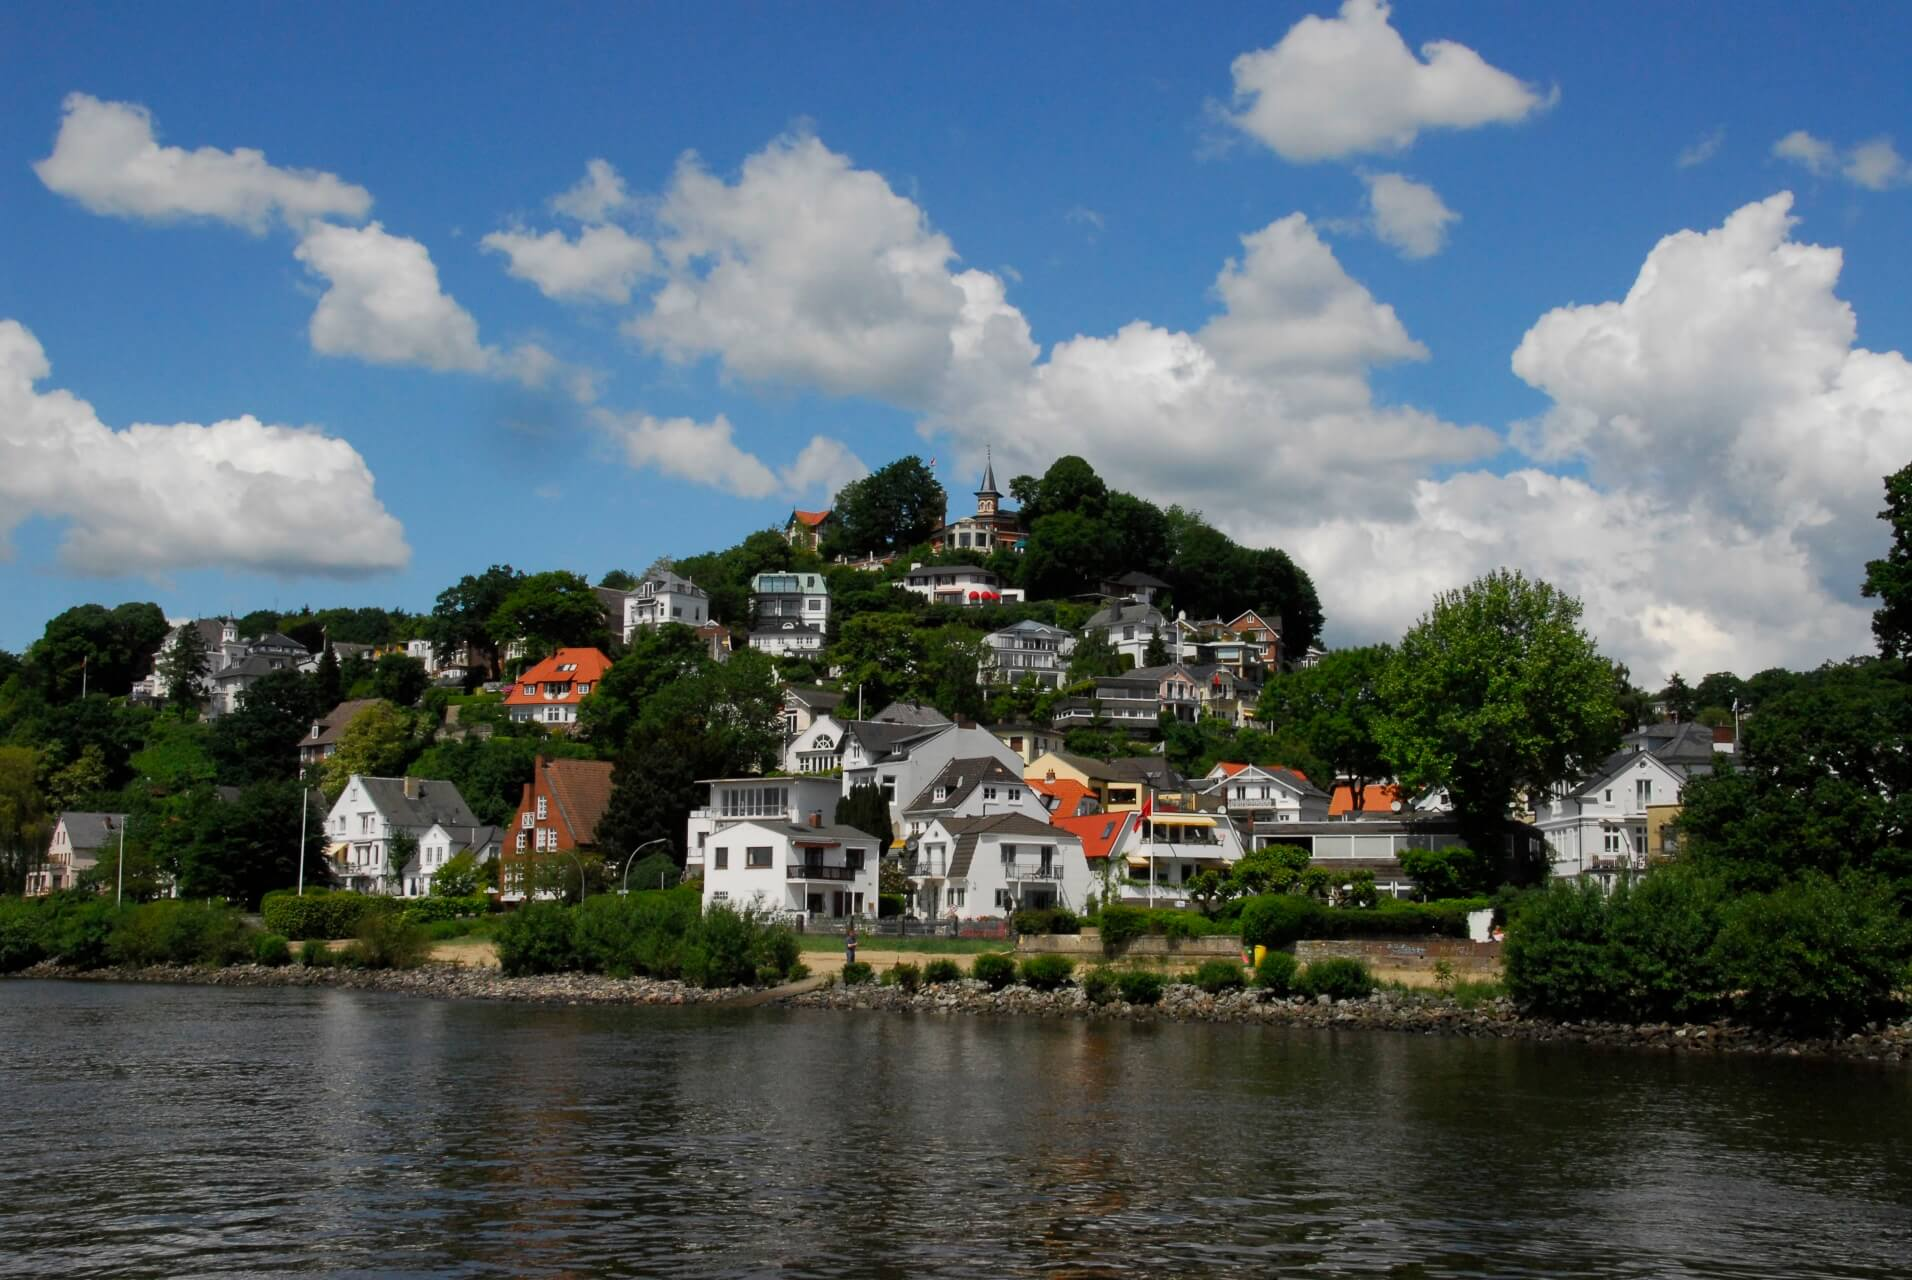 Blankenese in Hamburg